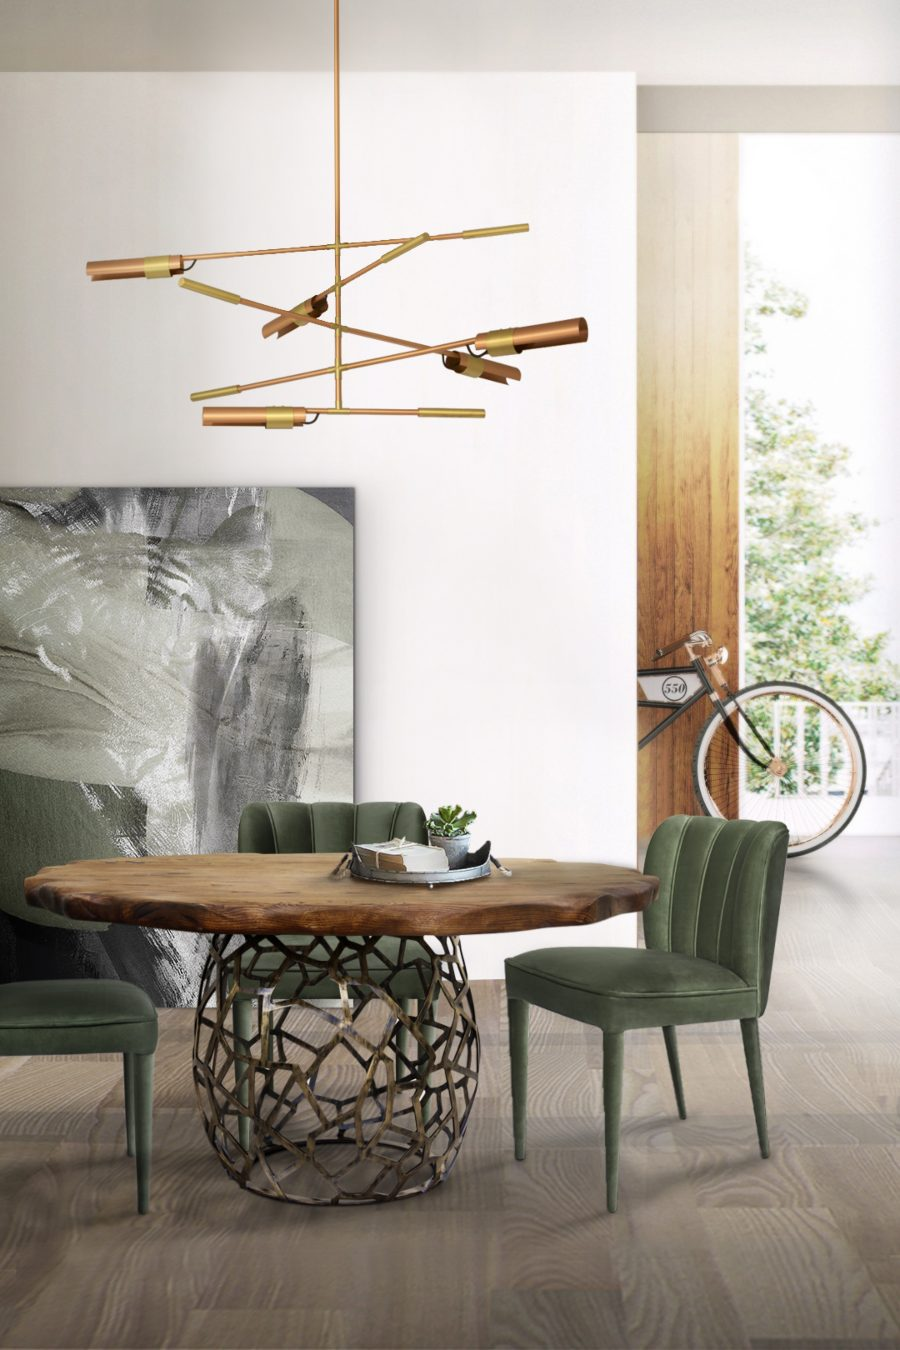 Modern Mid-Century: One Of The Chapters of the Modern Interiors Book modern mid-century Modern Mid-Century: One Of The Chapters Of The Modern Interiors Book modern mid century one the chapters the modern interiors book 5